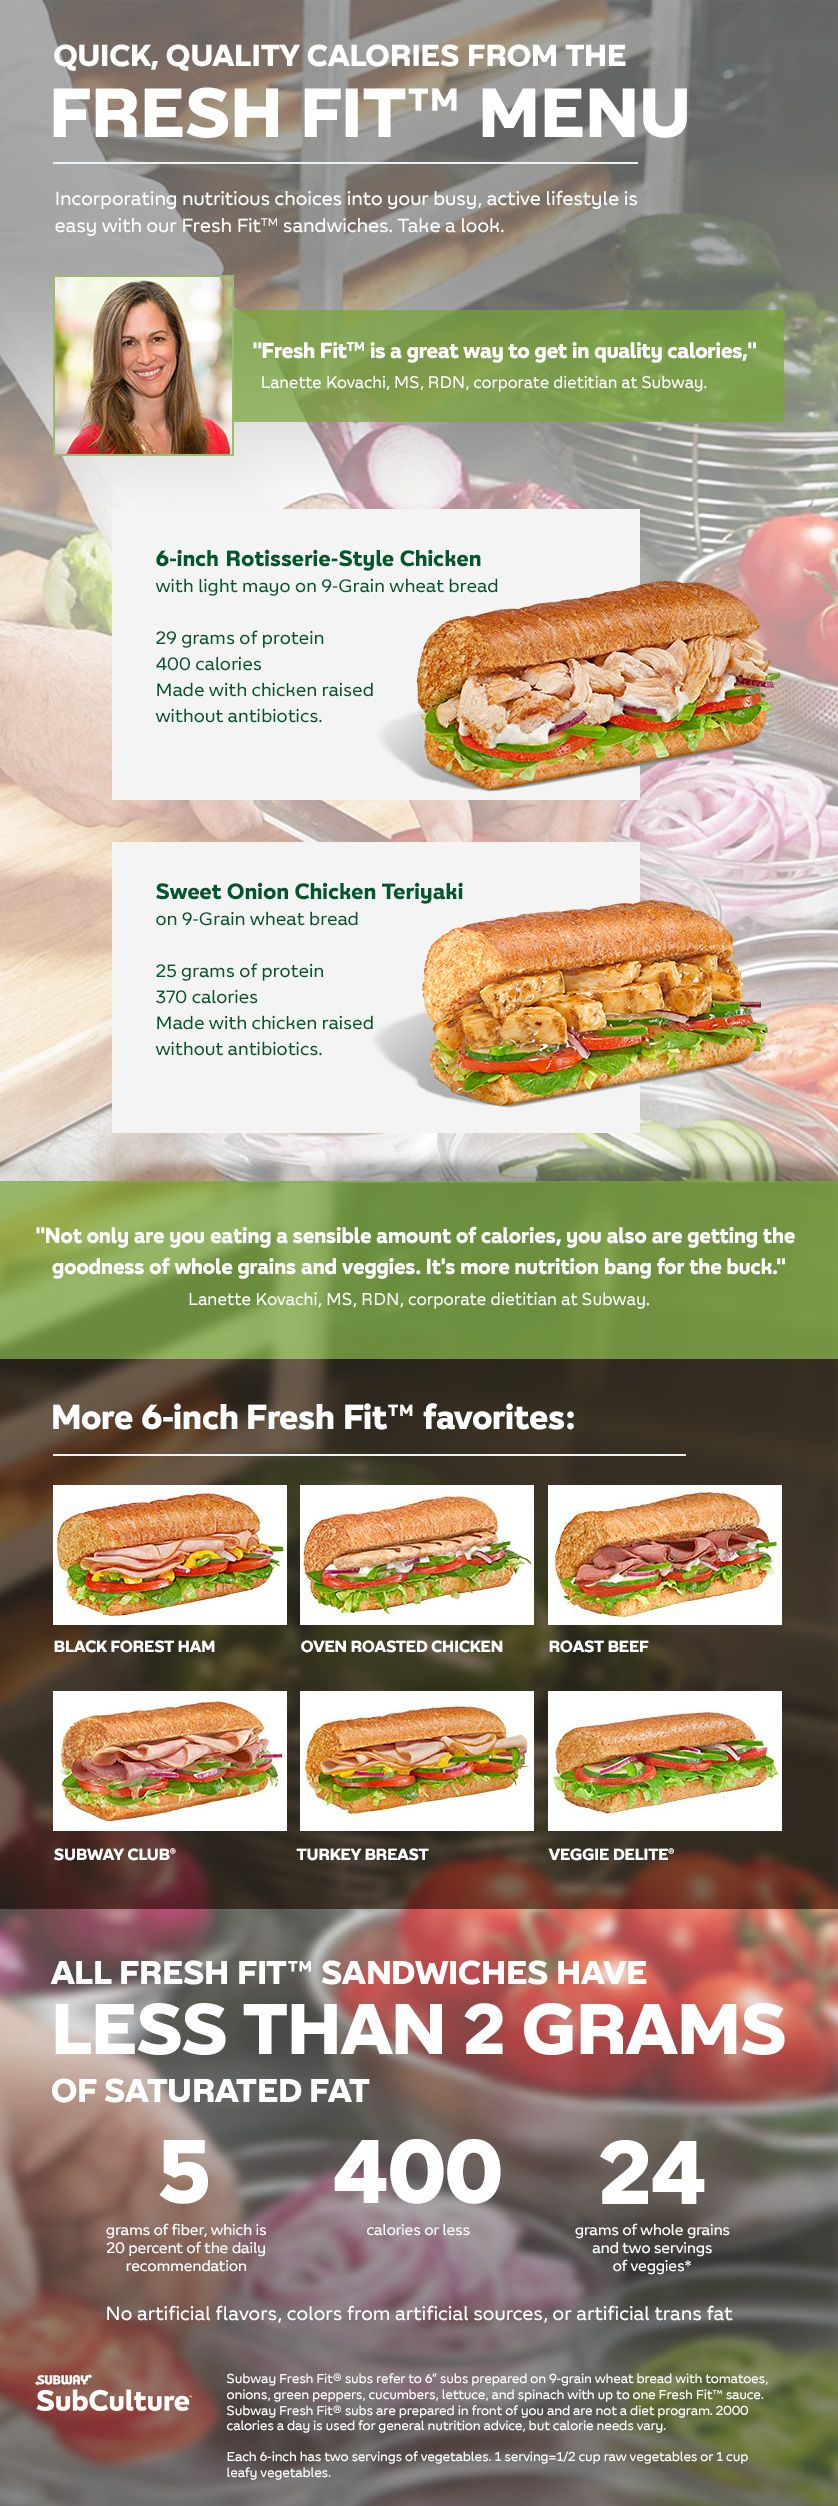 Subway Fresh Fit® menu infographic